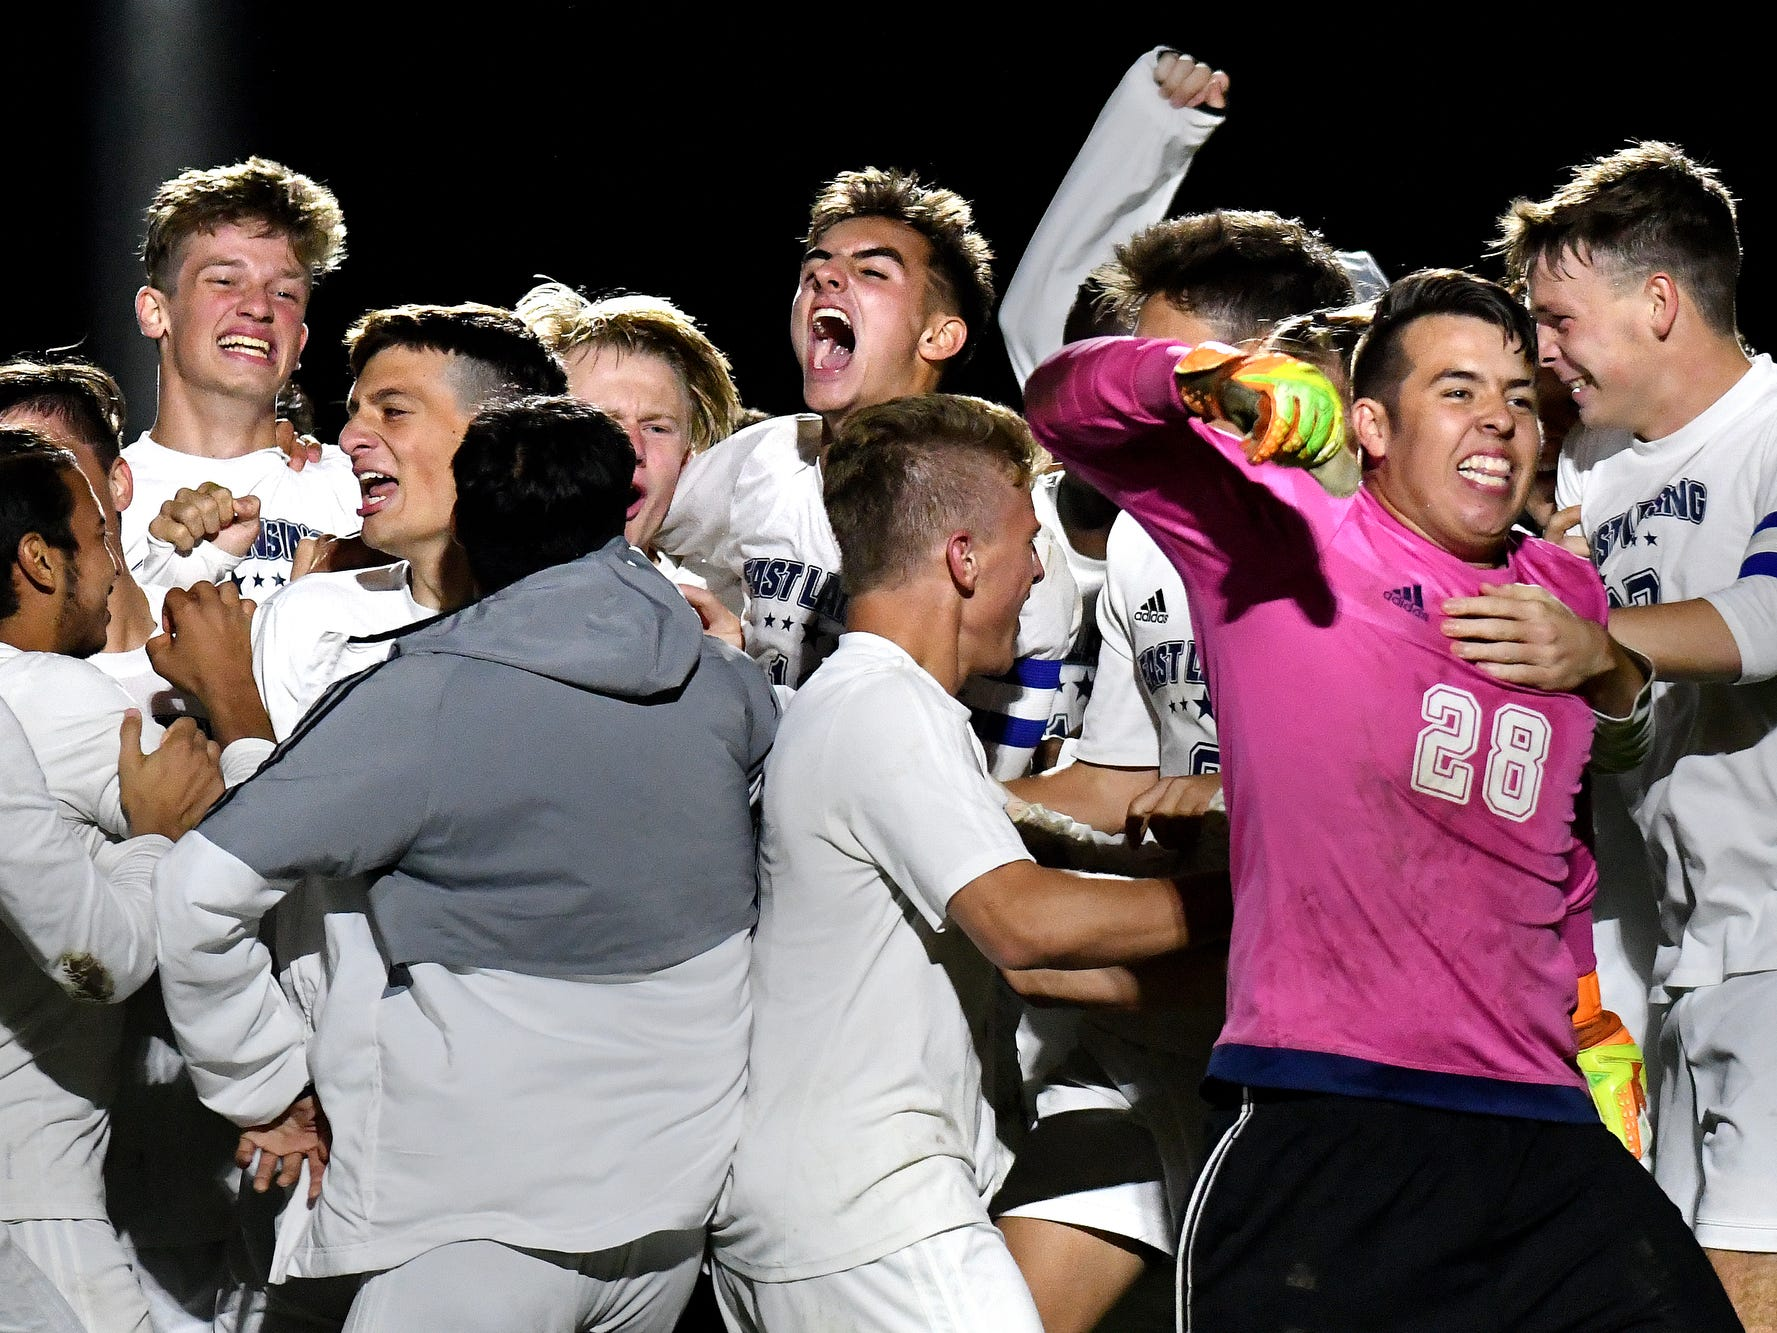 East Lansing's soccer team celebrates after beating Okemos after a shootout on Thursday, Oct. 4, 2018, in the Gold Cup semifinal match at Okemos High School.